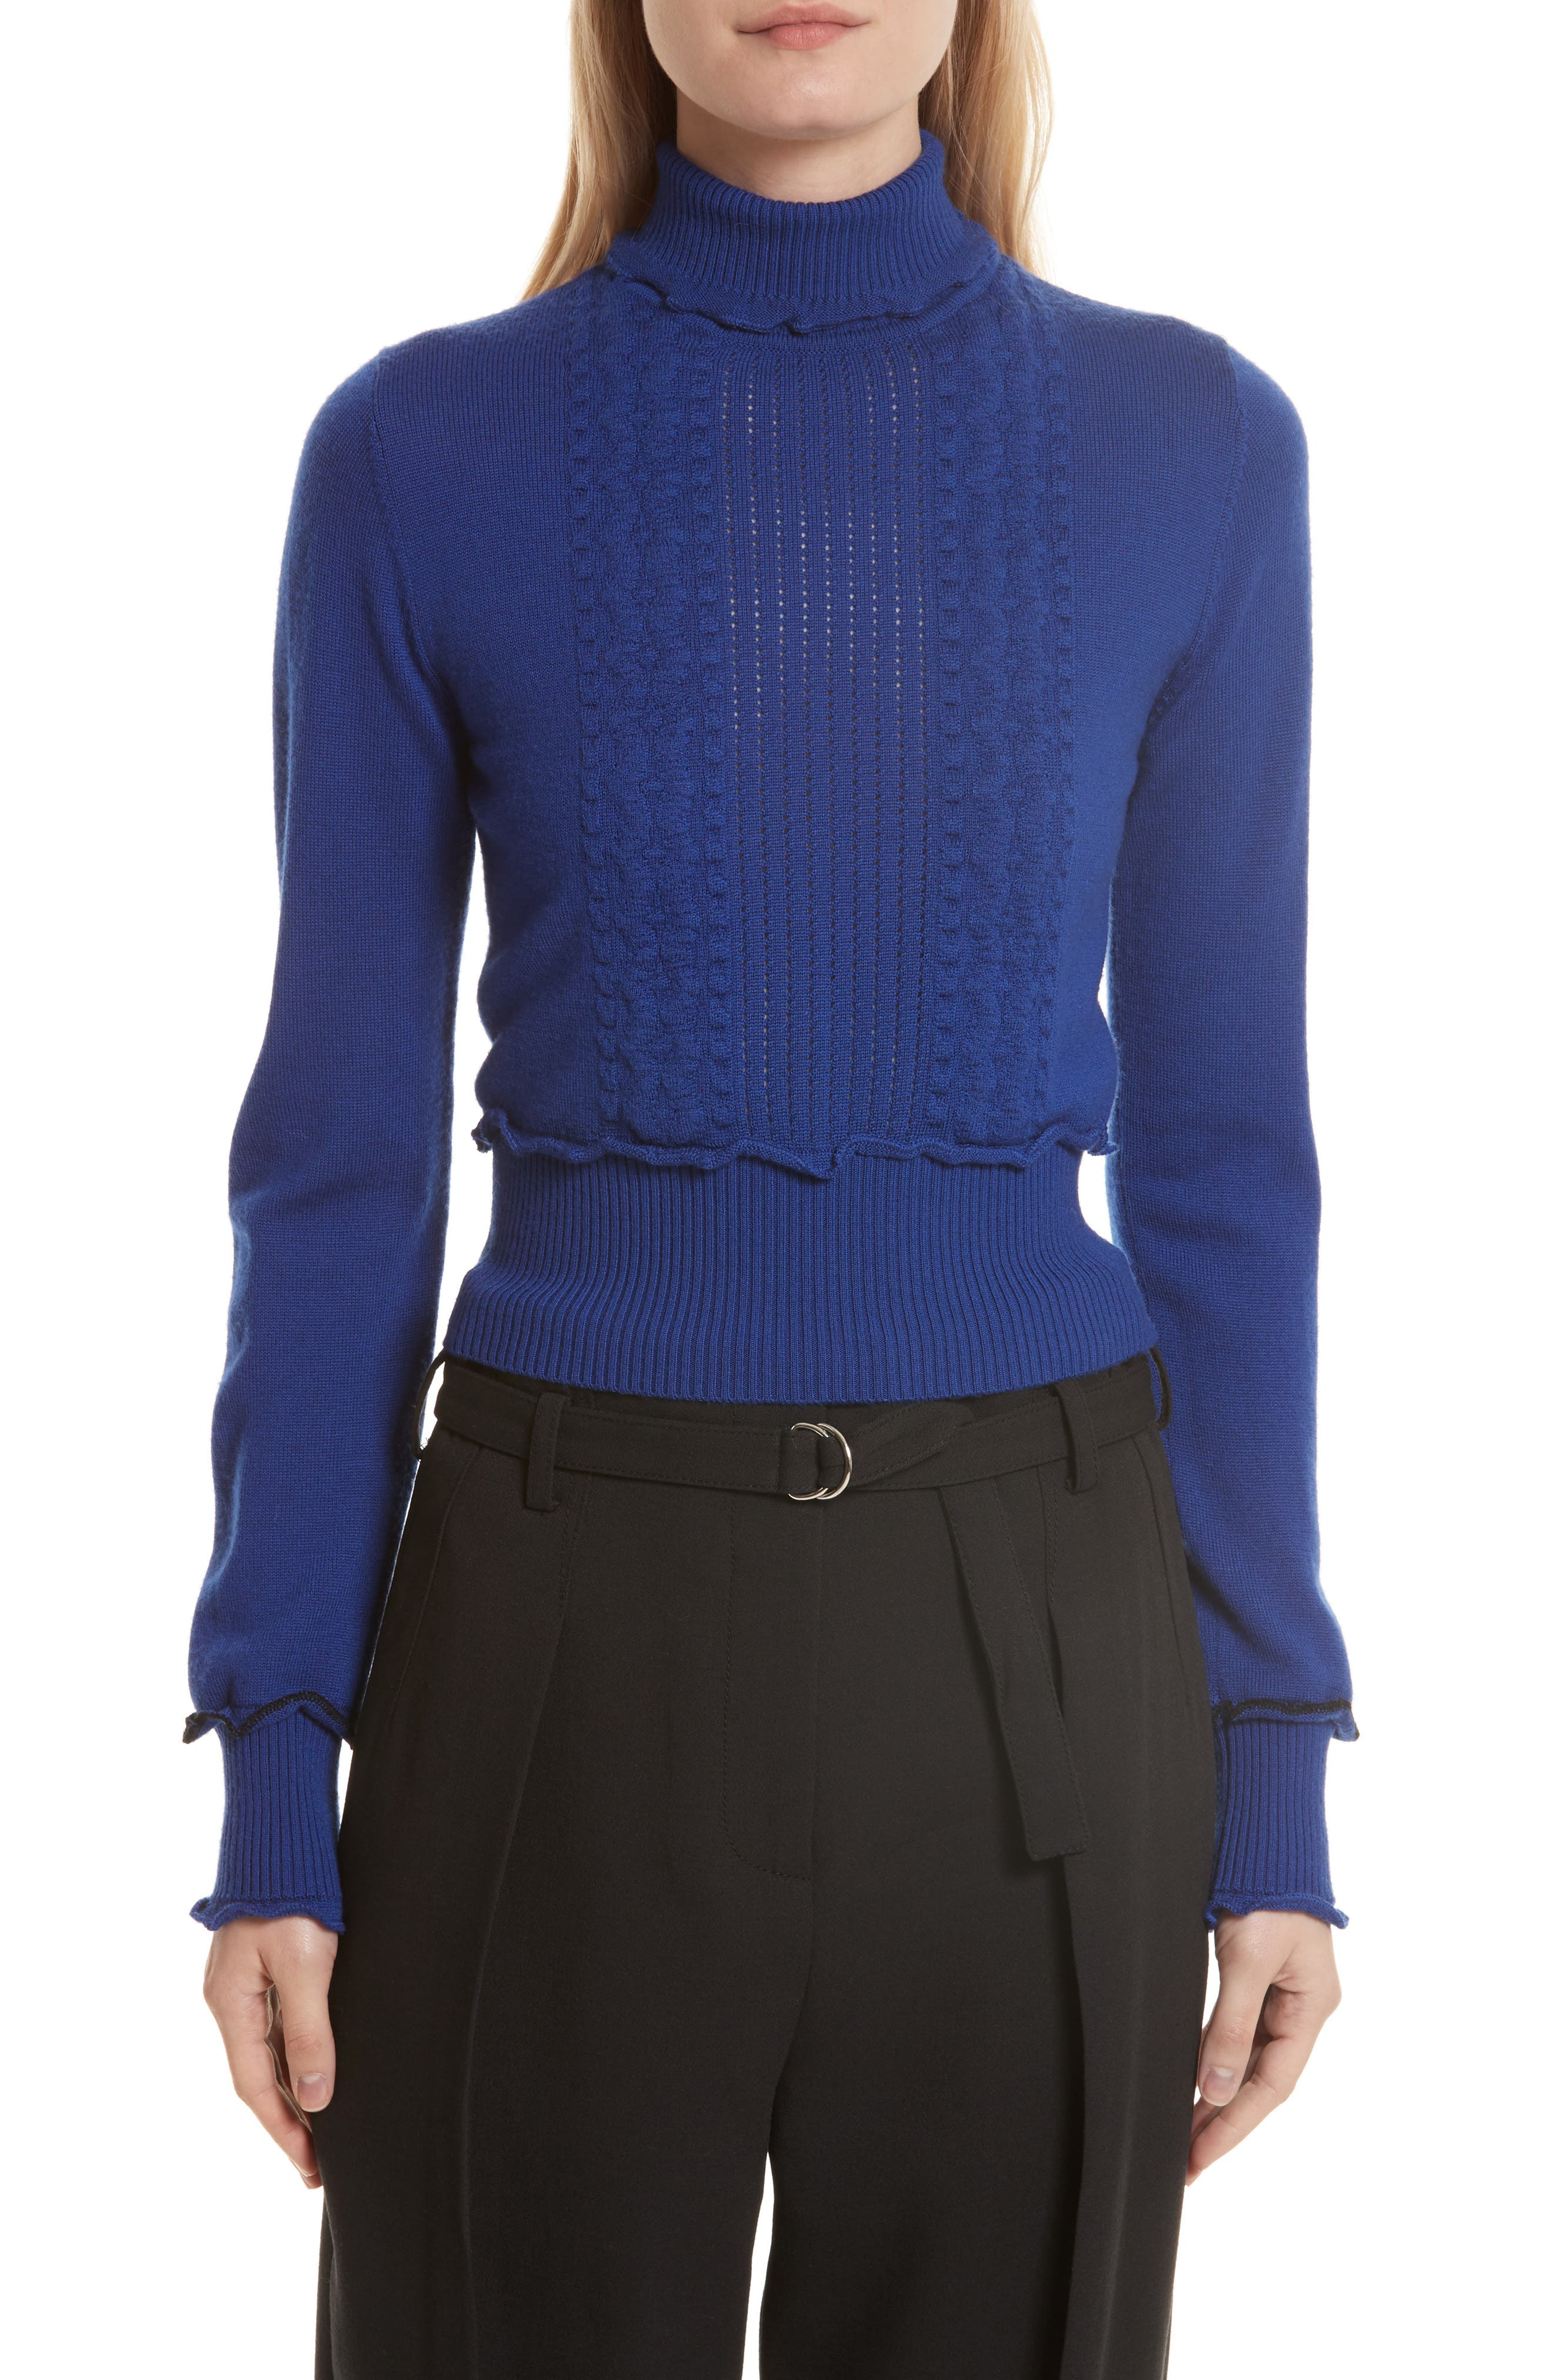 Main Image - 3.1 Phillip Lim Puffy Cable Turtleneck Sweater